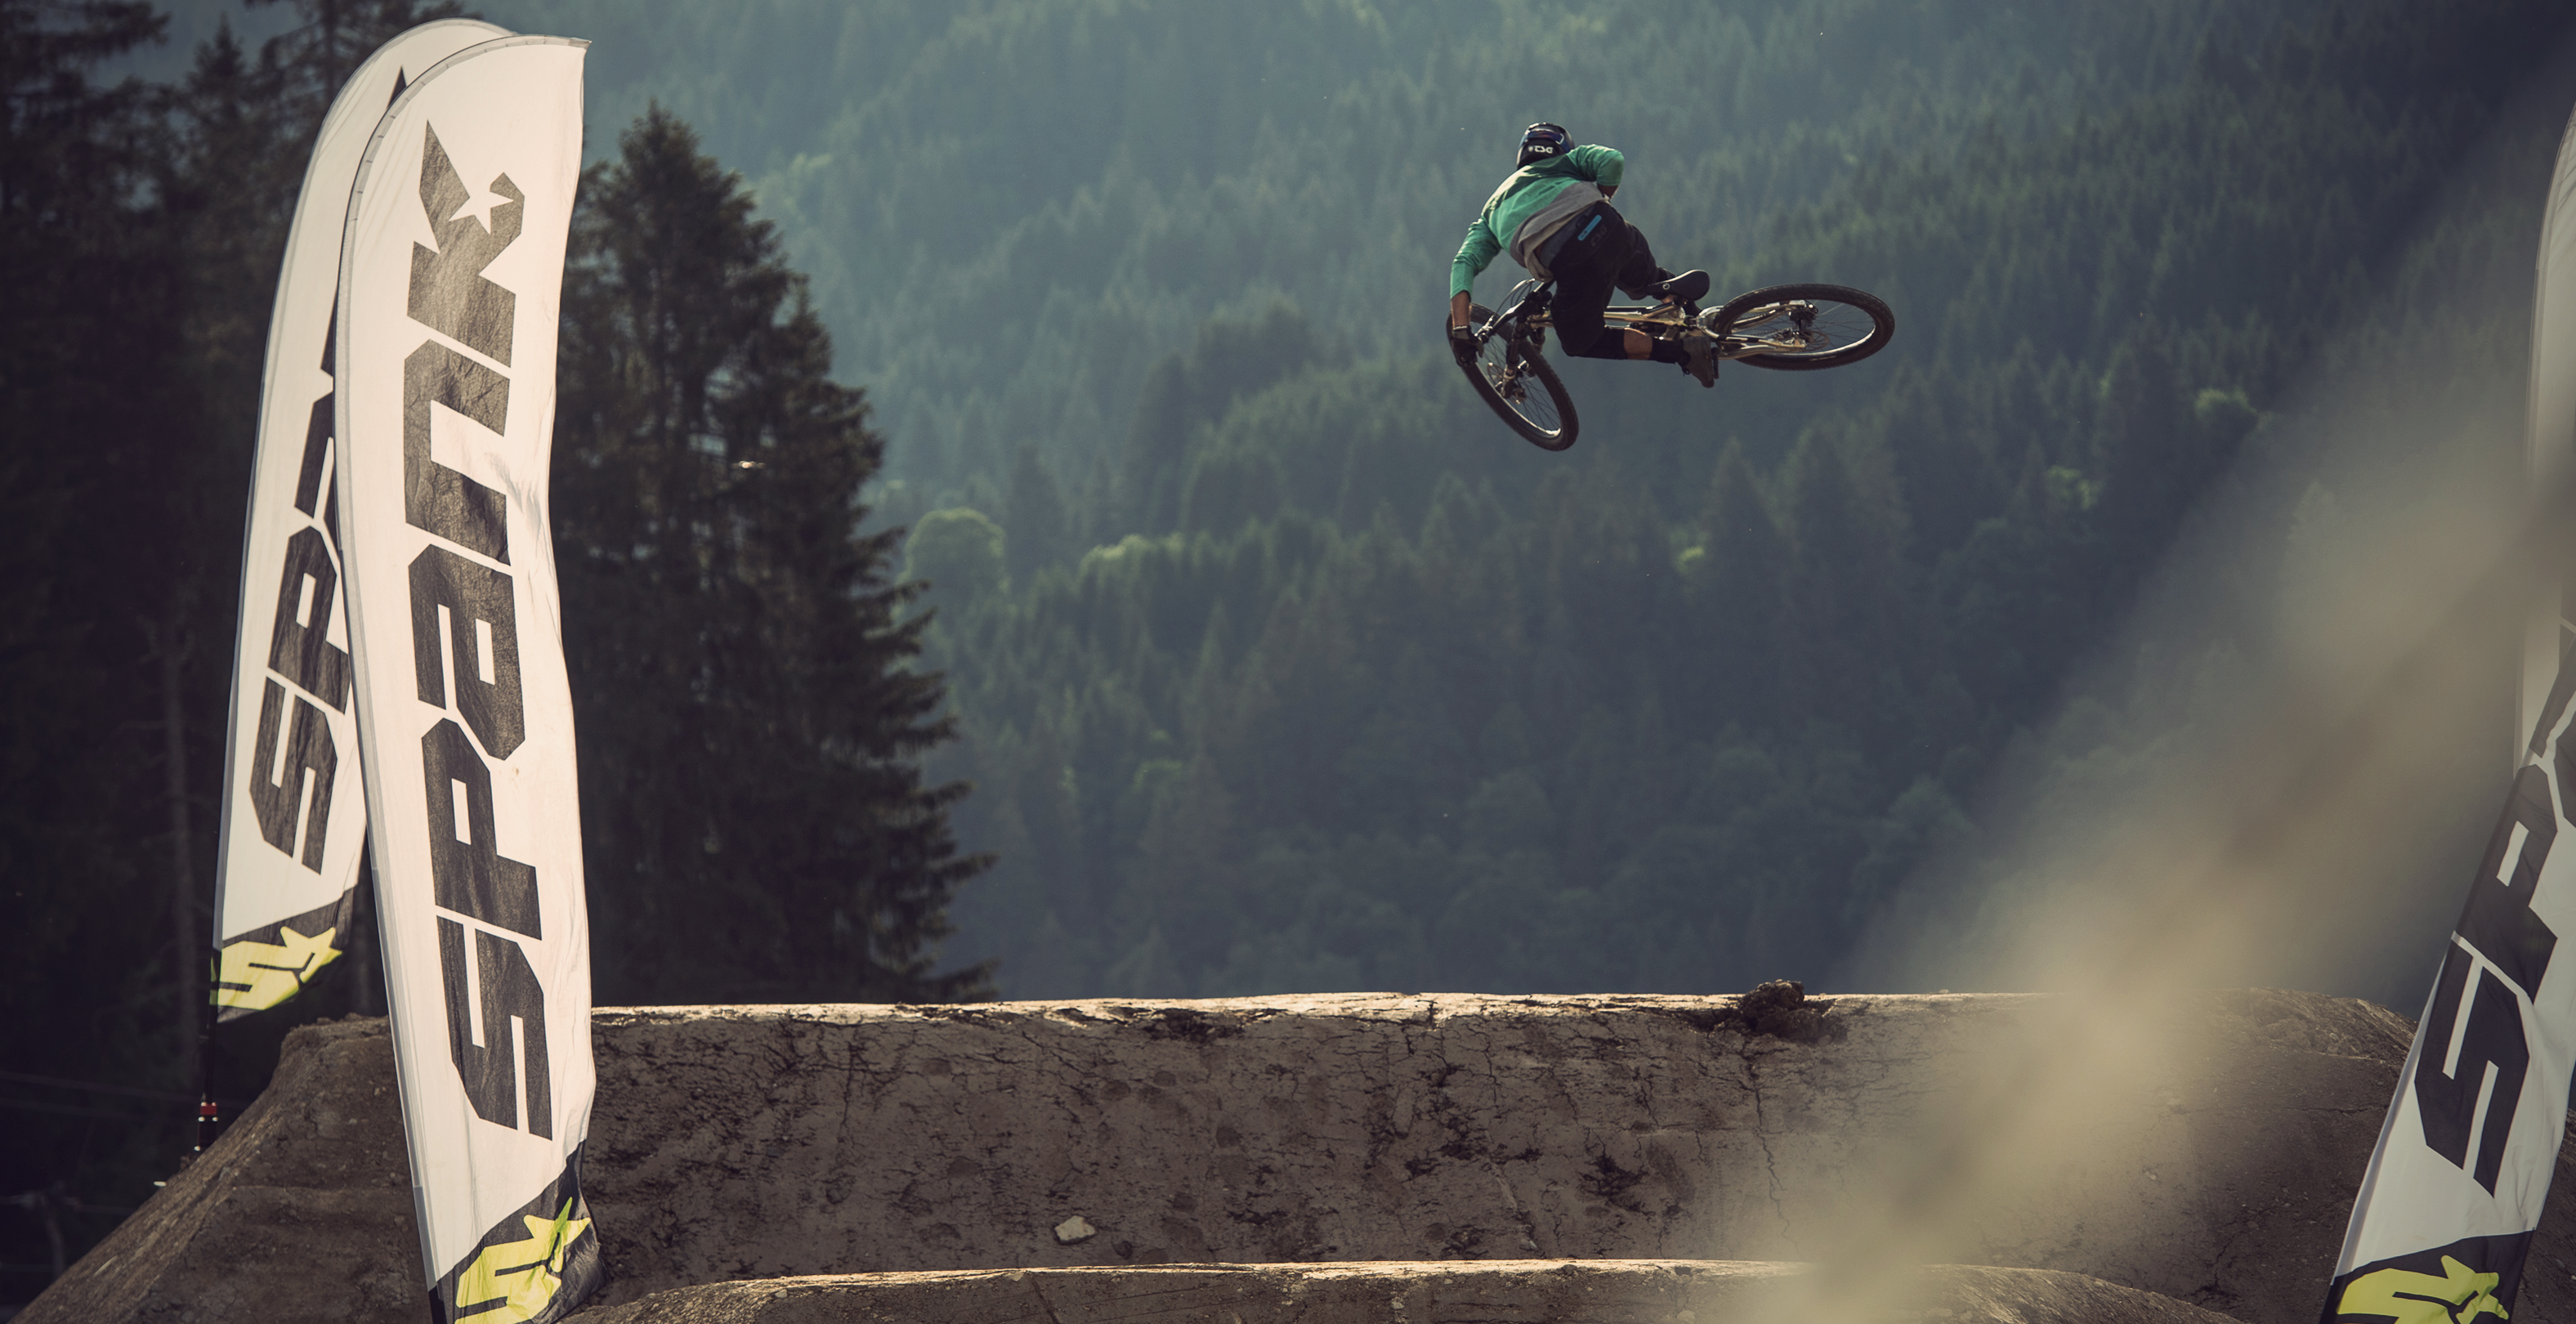 Amir Kabbani at the Crankworx Les Gets Whip-Off Session